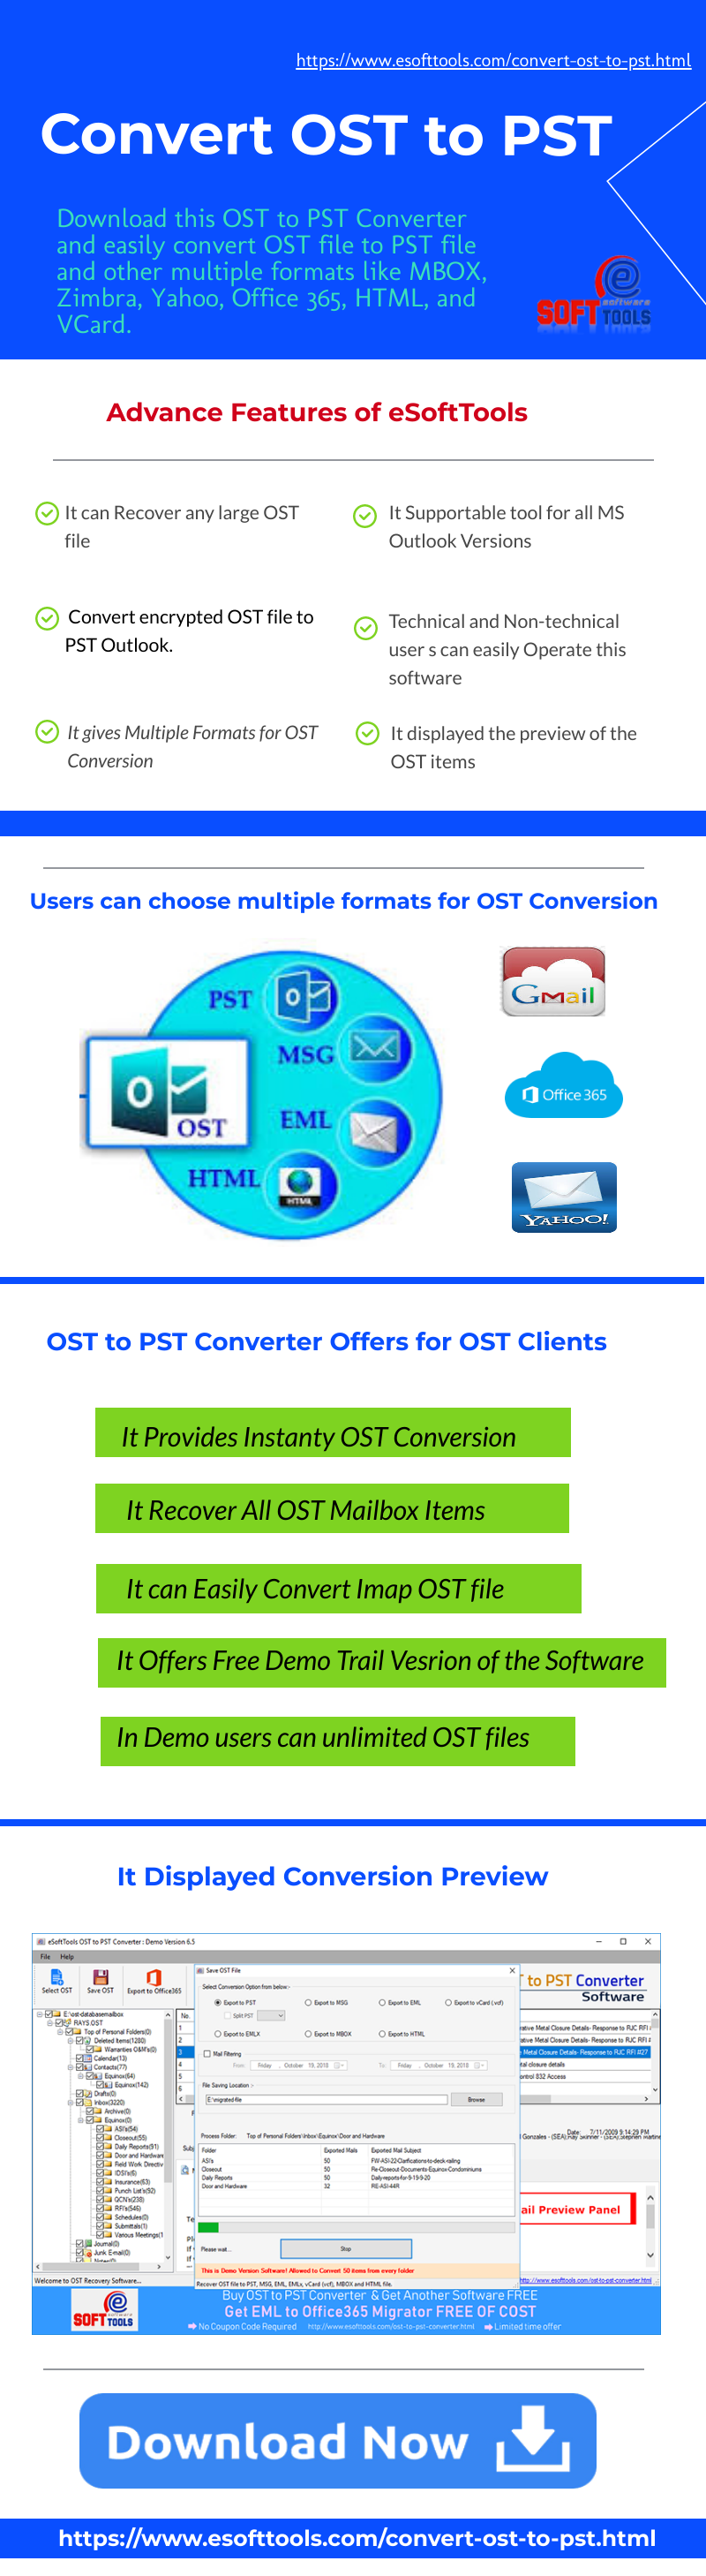 RE: Download Secure OST to PST Converter